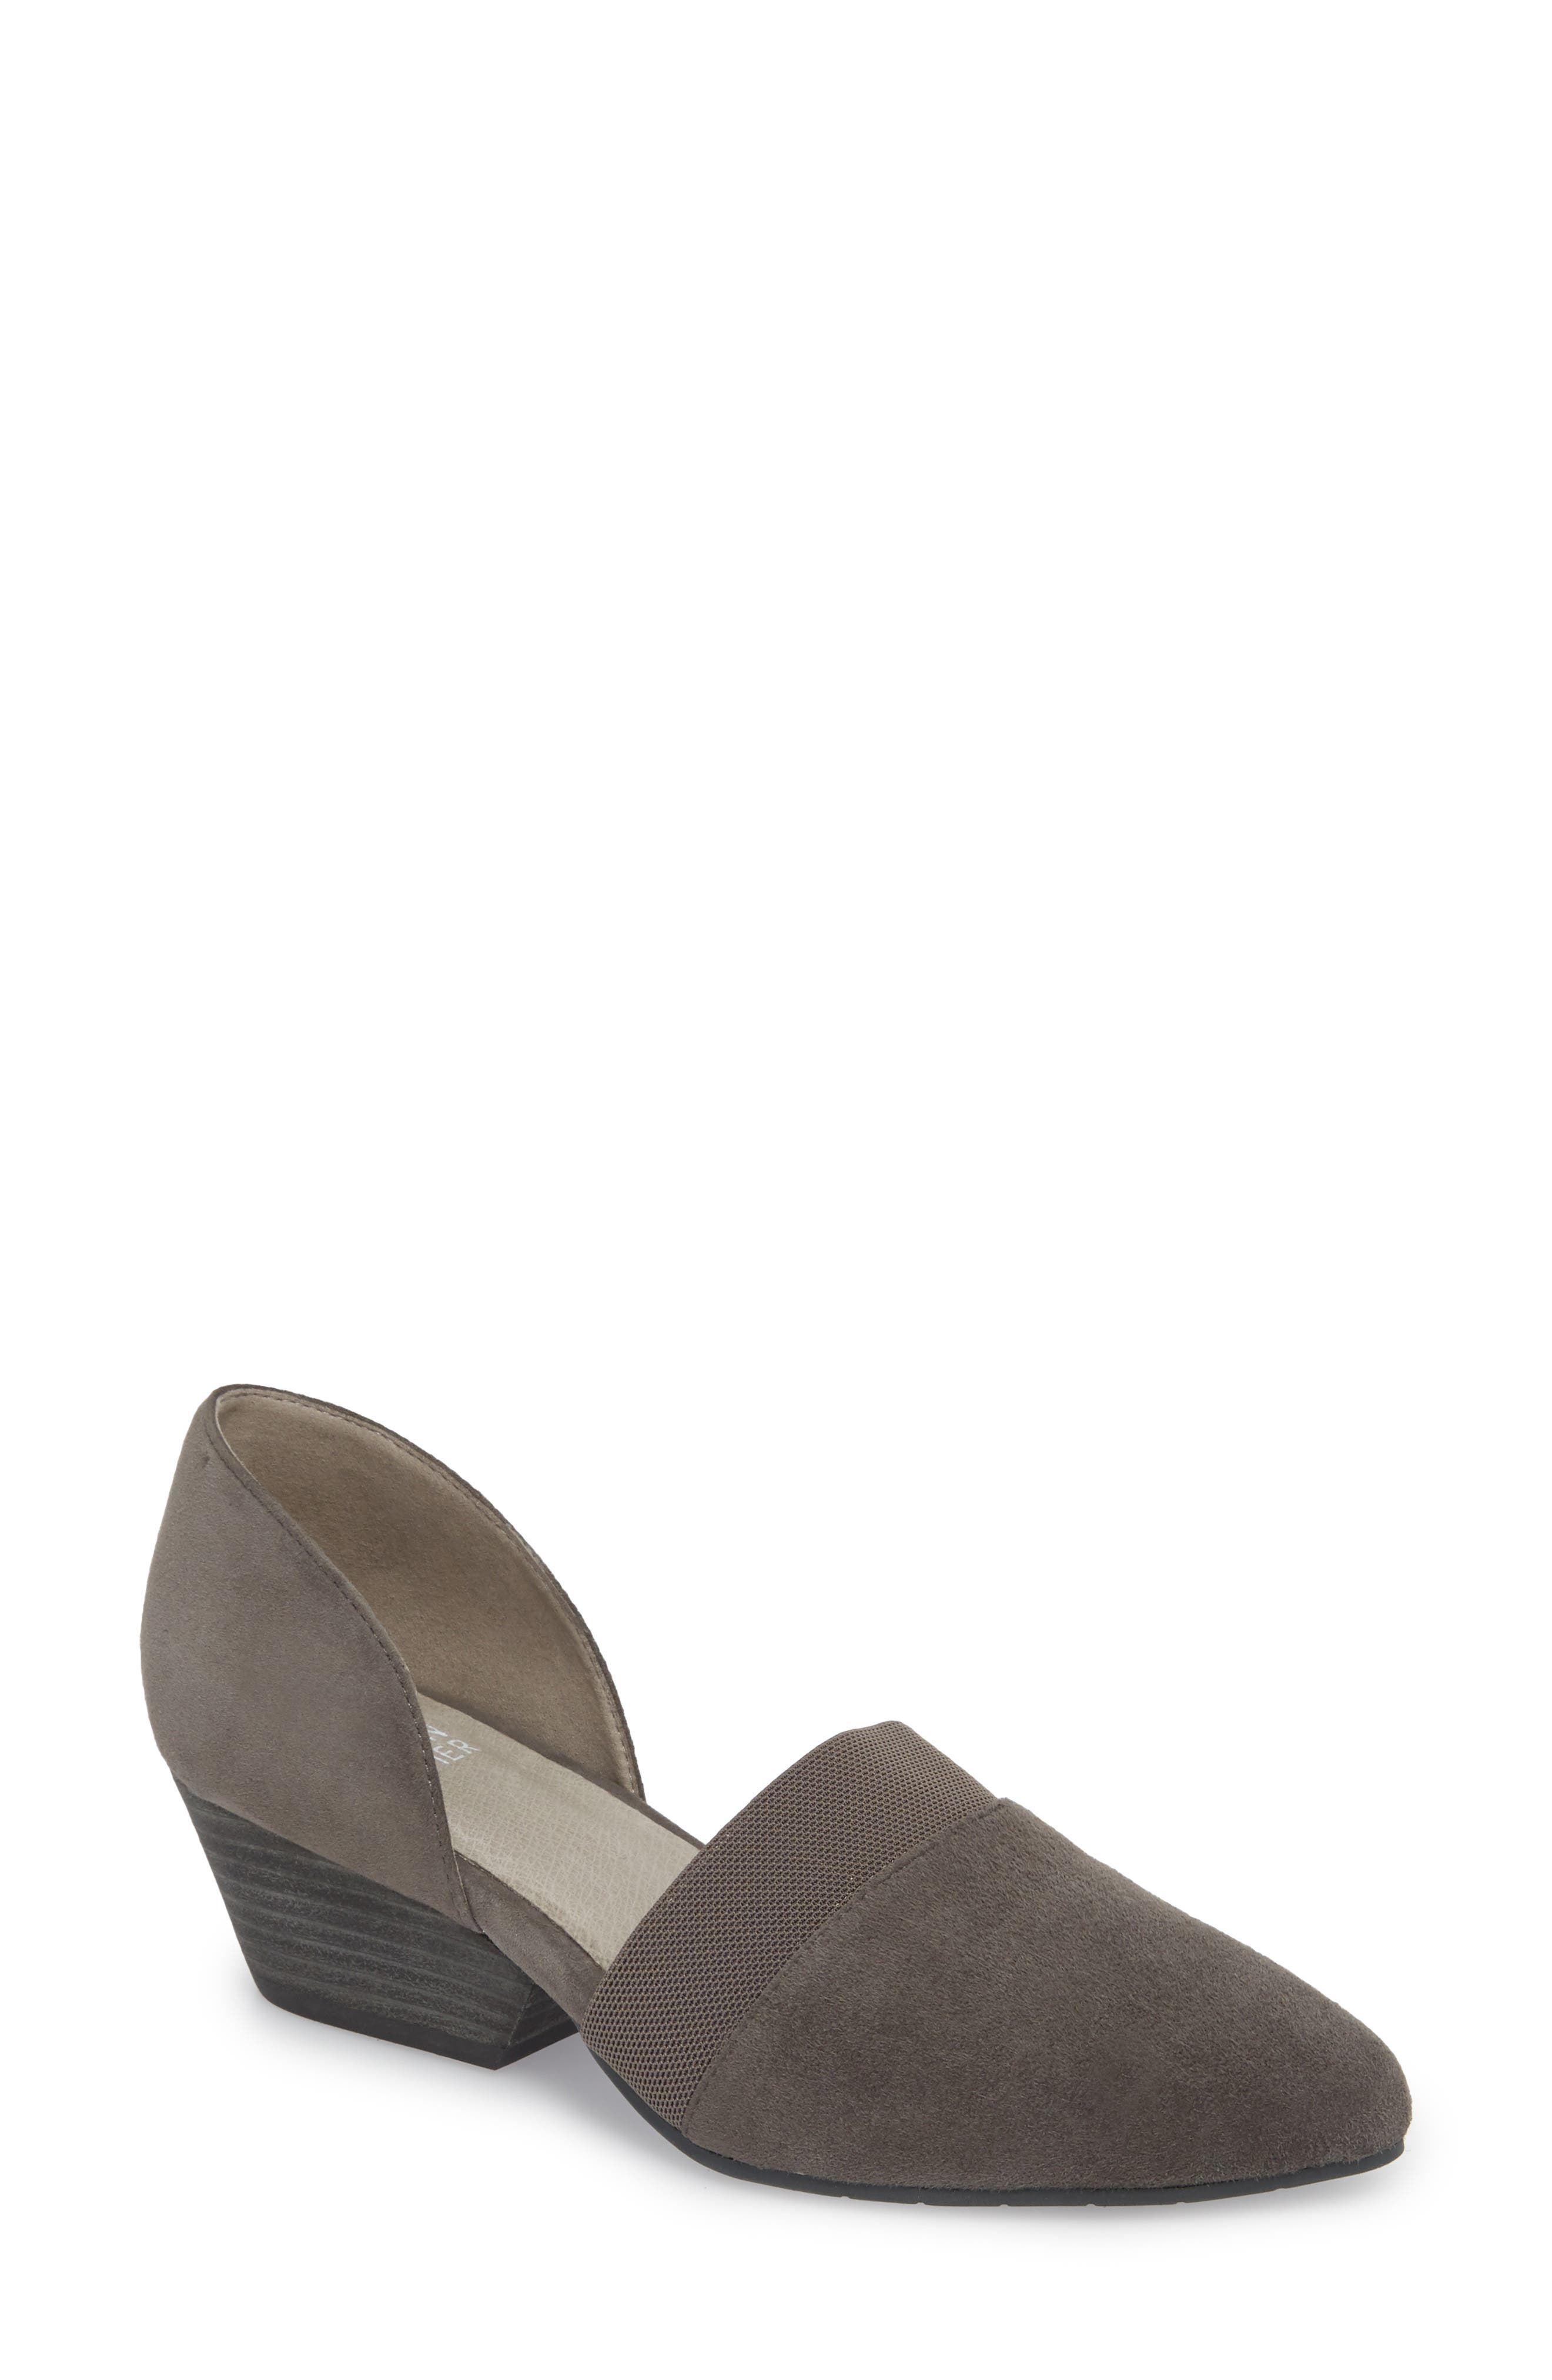 Hilly d'Orsay Pump,                             Main thumbnail 1, color,                             GRAPHITE SUEDE